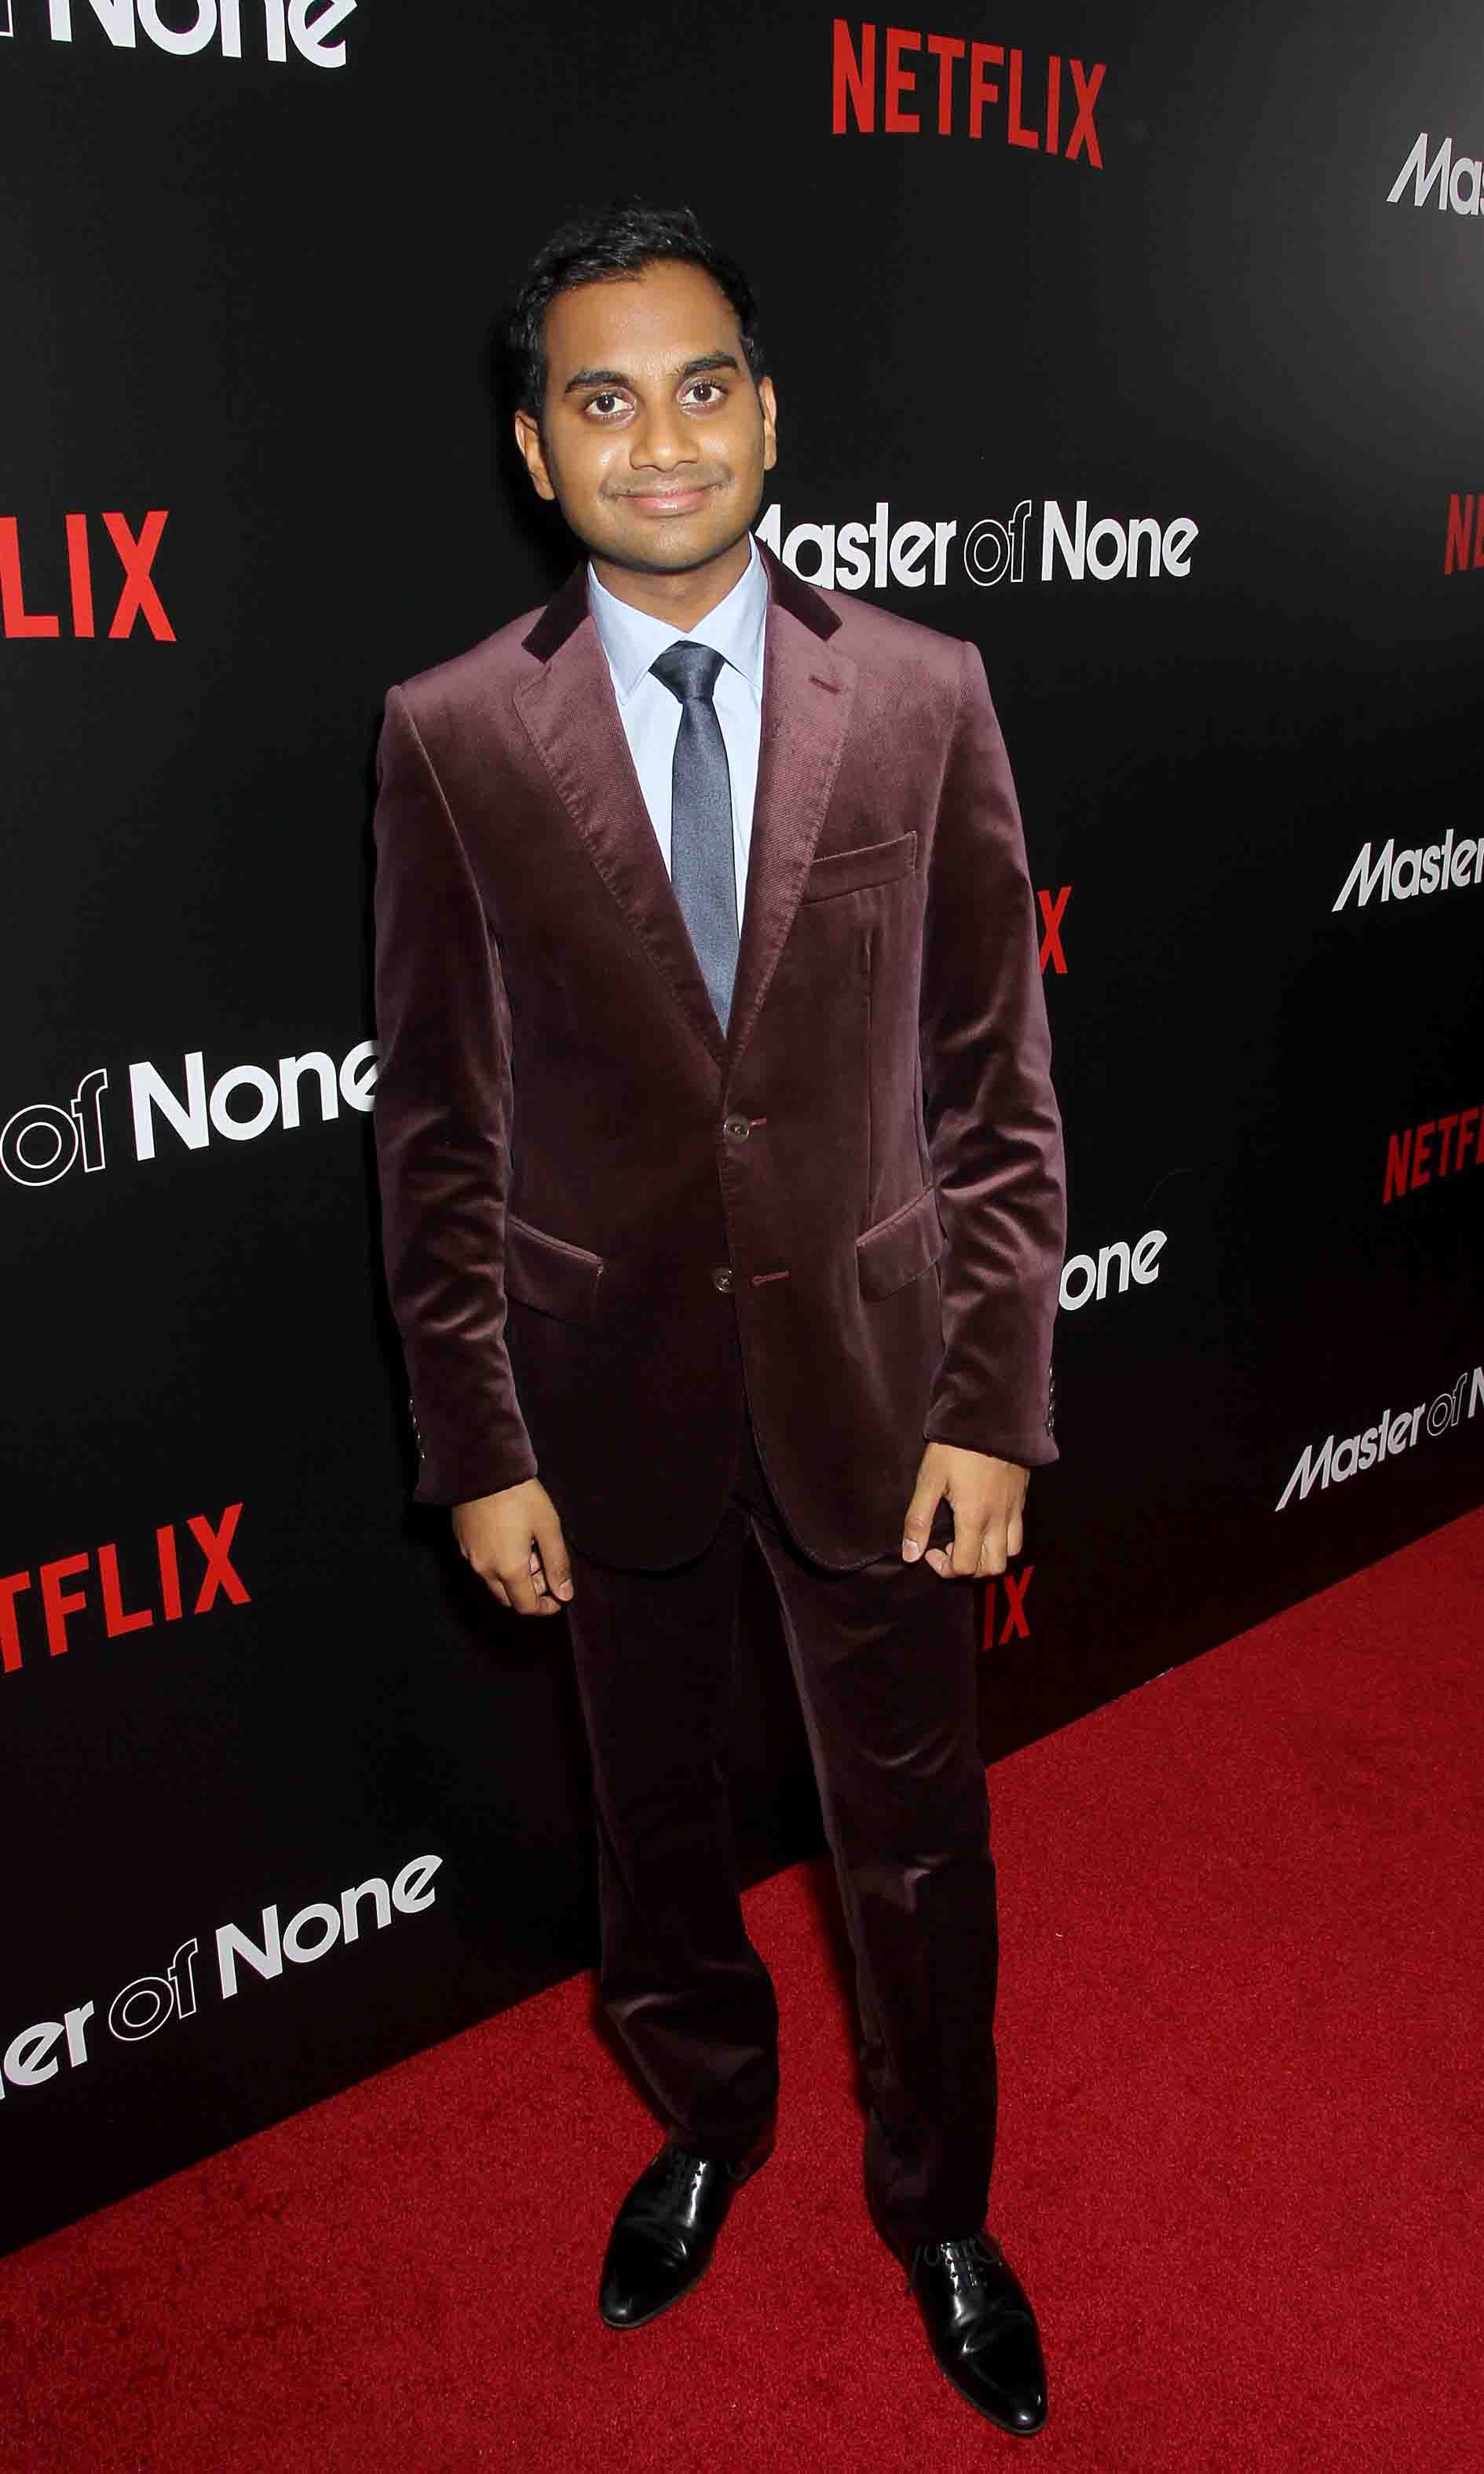 November 5: Everything is funny! Aziz Ansari celebrated the premiere of his newest show on Netflix 'Master of None' in New York City. 